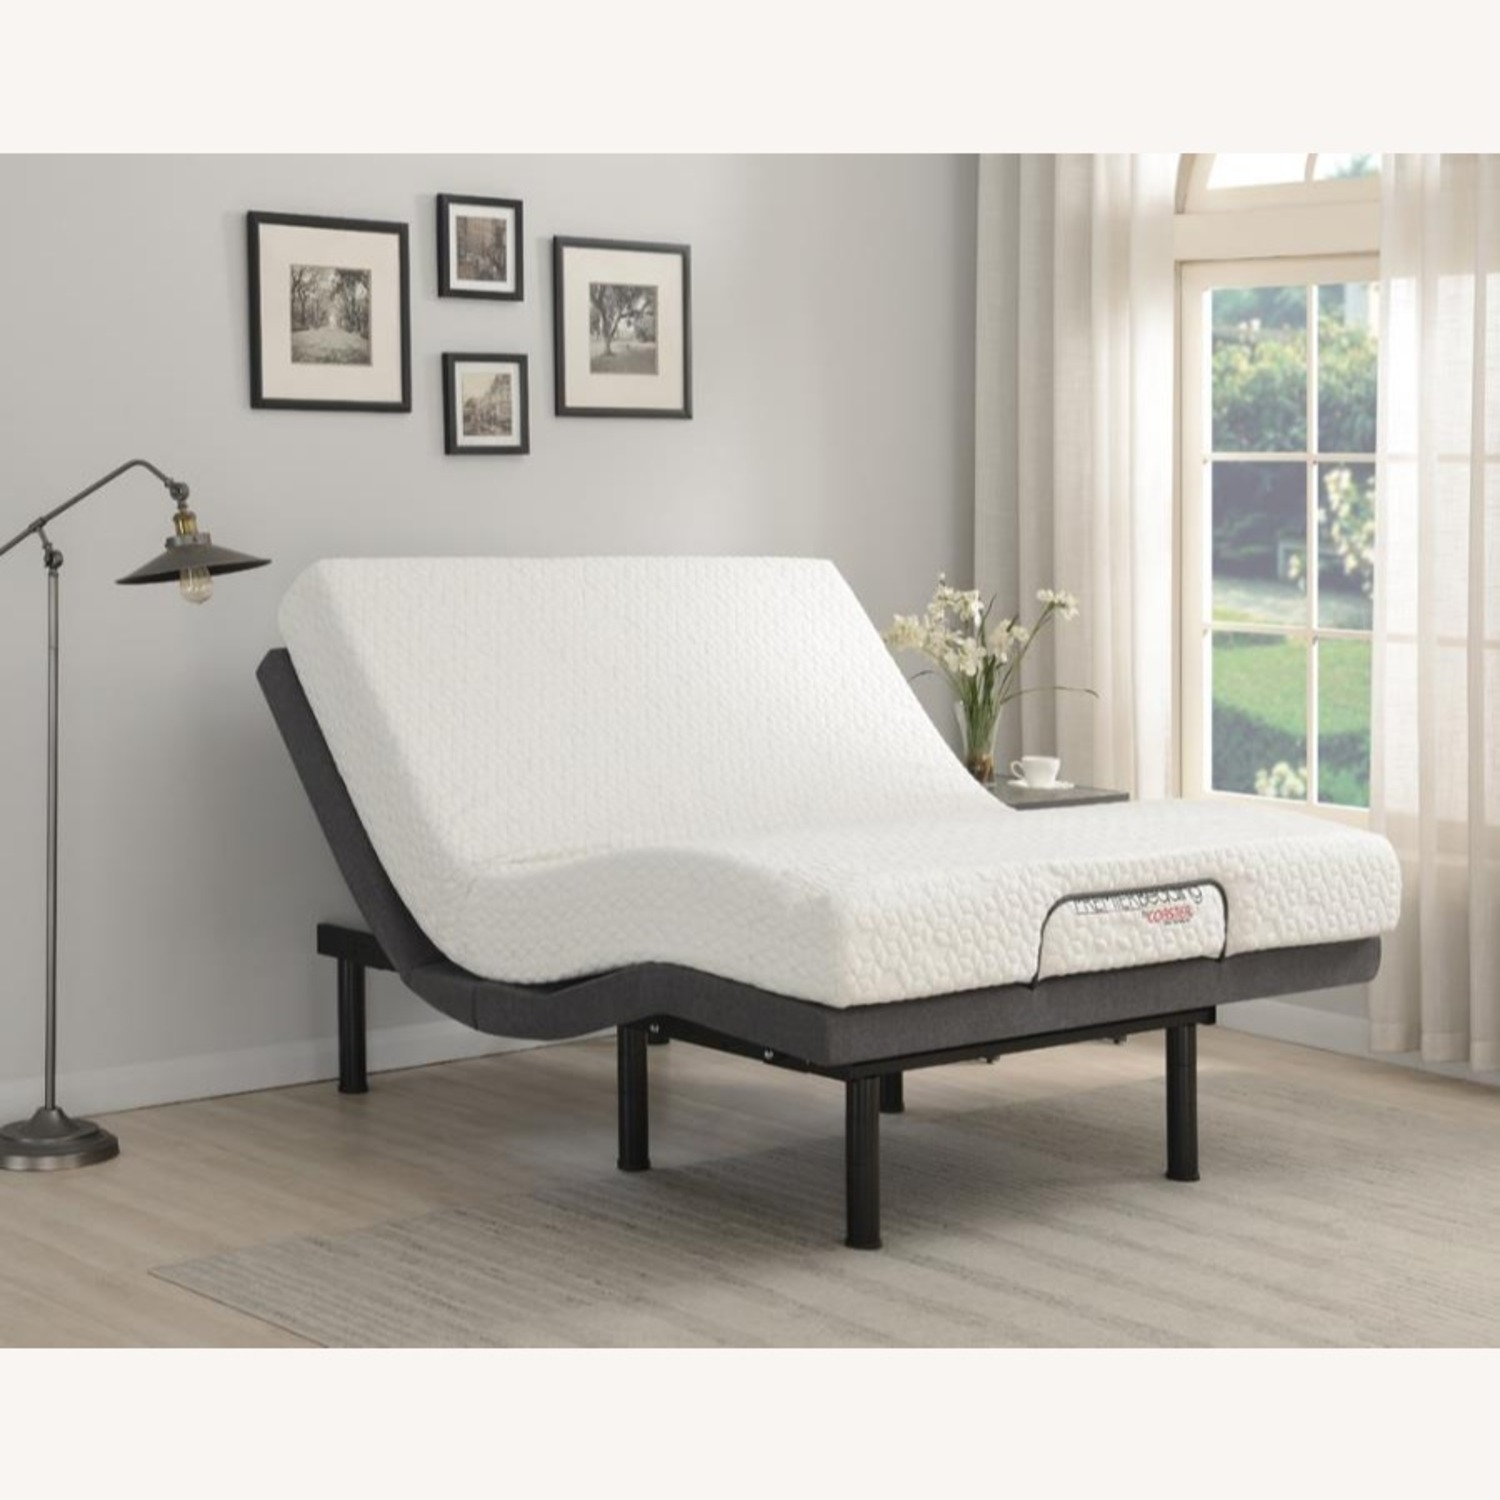 Adjustable Queen Bed Base In Grey Fabric - image-9